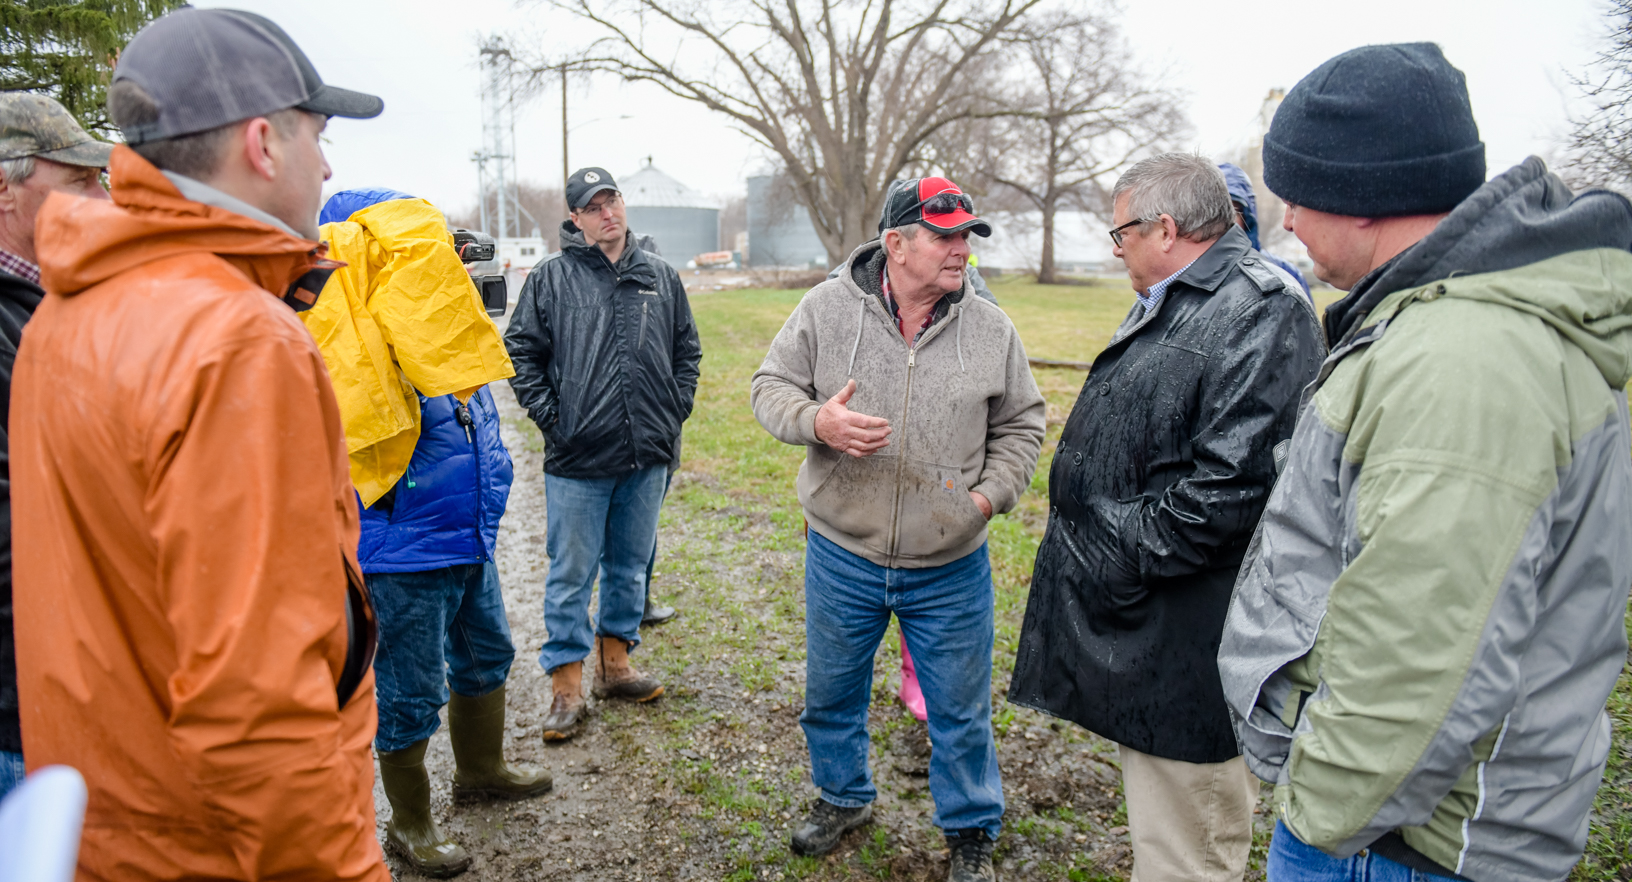 USDA Under Secretary Bill Northey about damage his farm sustained from Missouri River flooding.